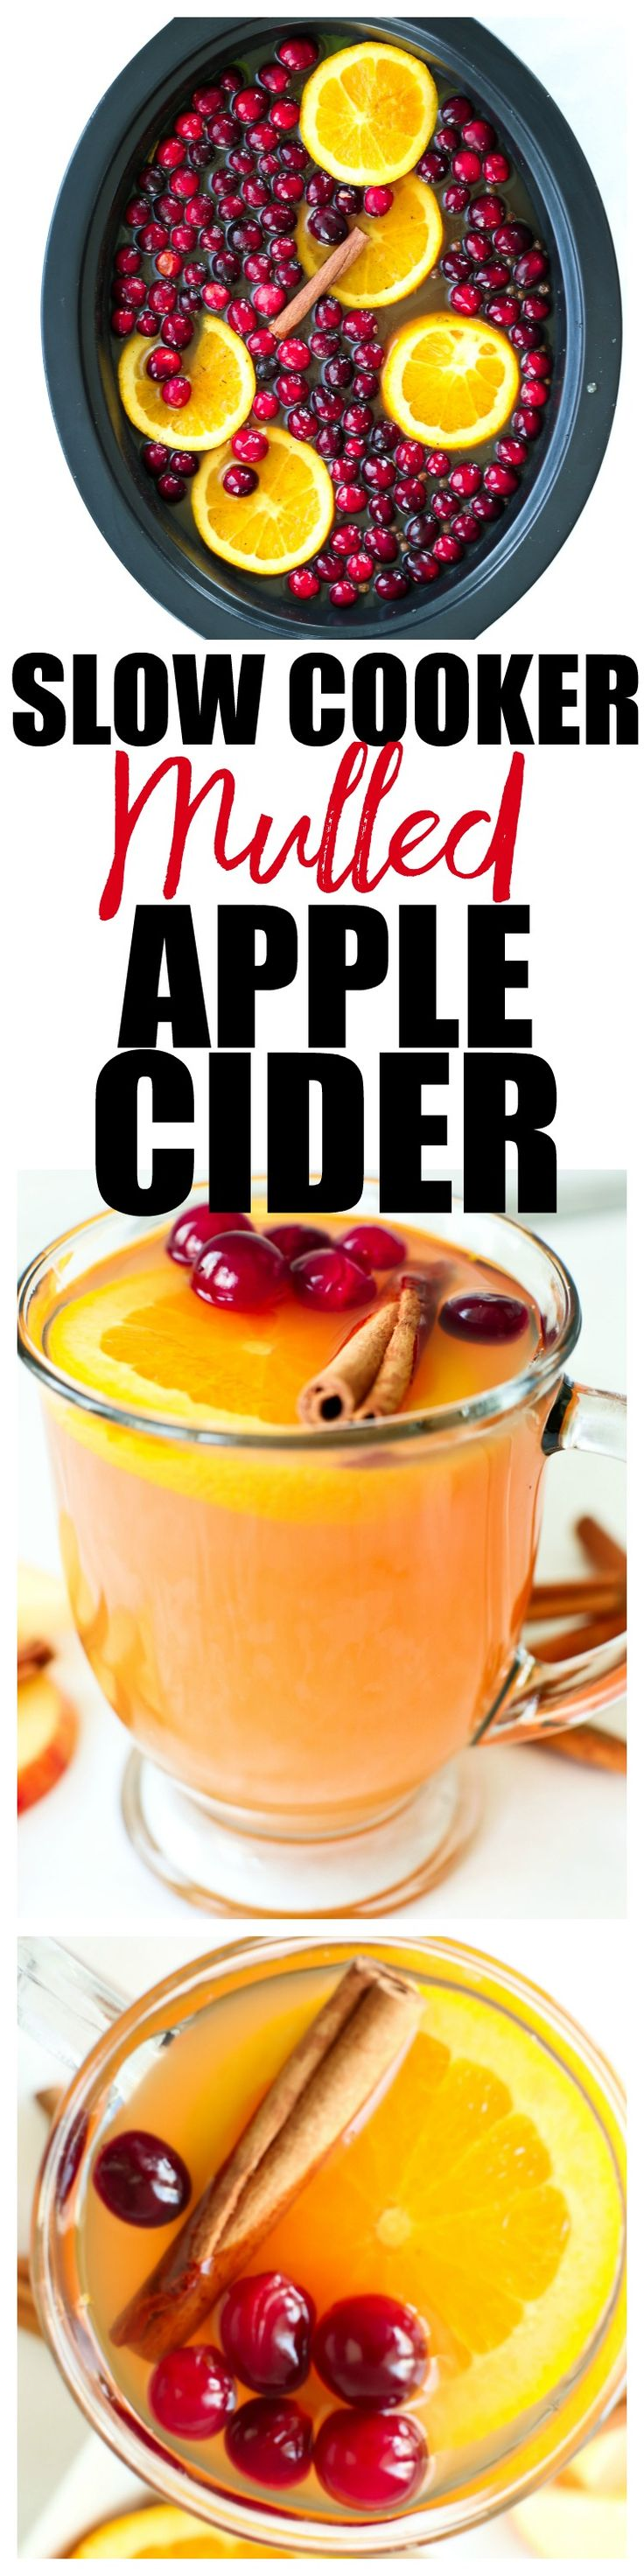 Mulled Hot Apple cider in the Crock-Pot brand slow cooker recipe! This is perfect for Thanksgiving, Christmas, or any holiday gathering! Sponsored content by Mirum Shopper.